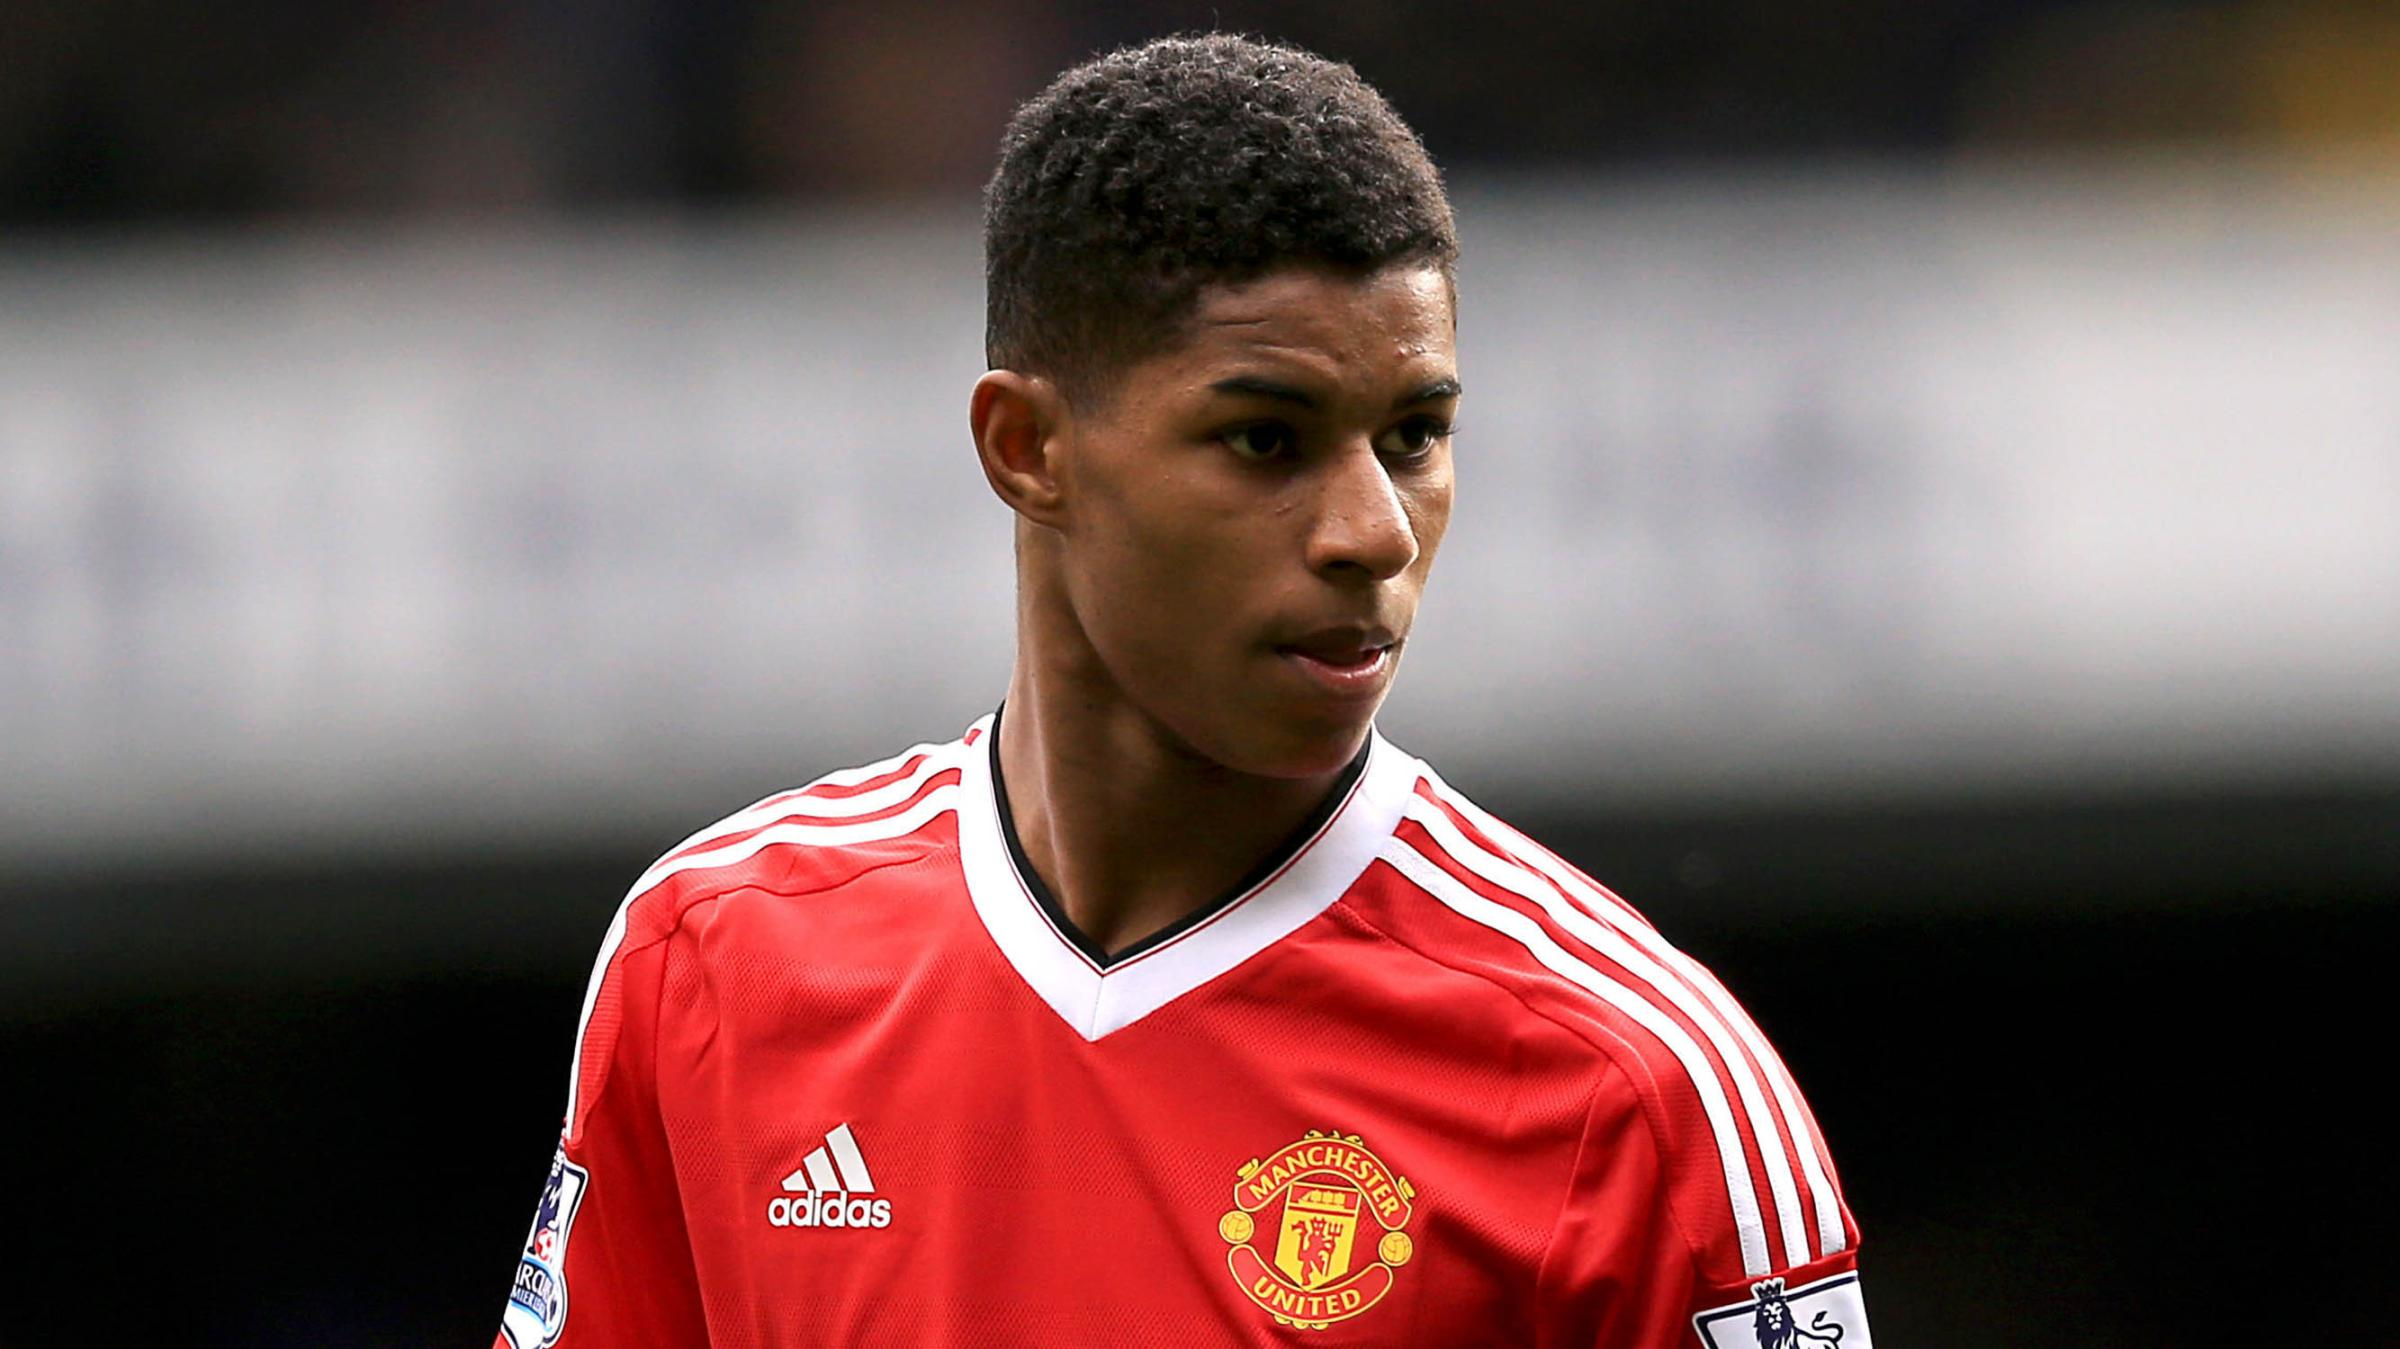 Marcus Rashford, football player